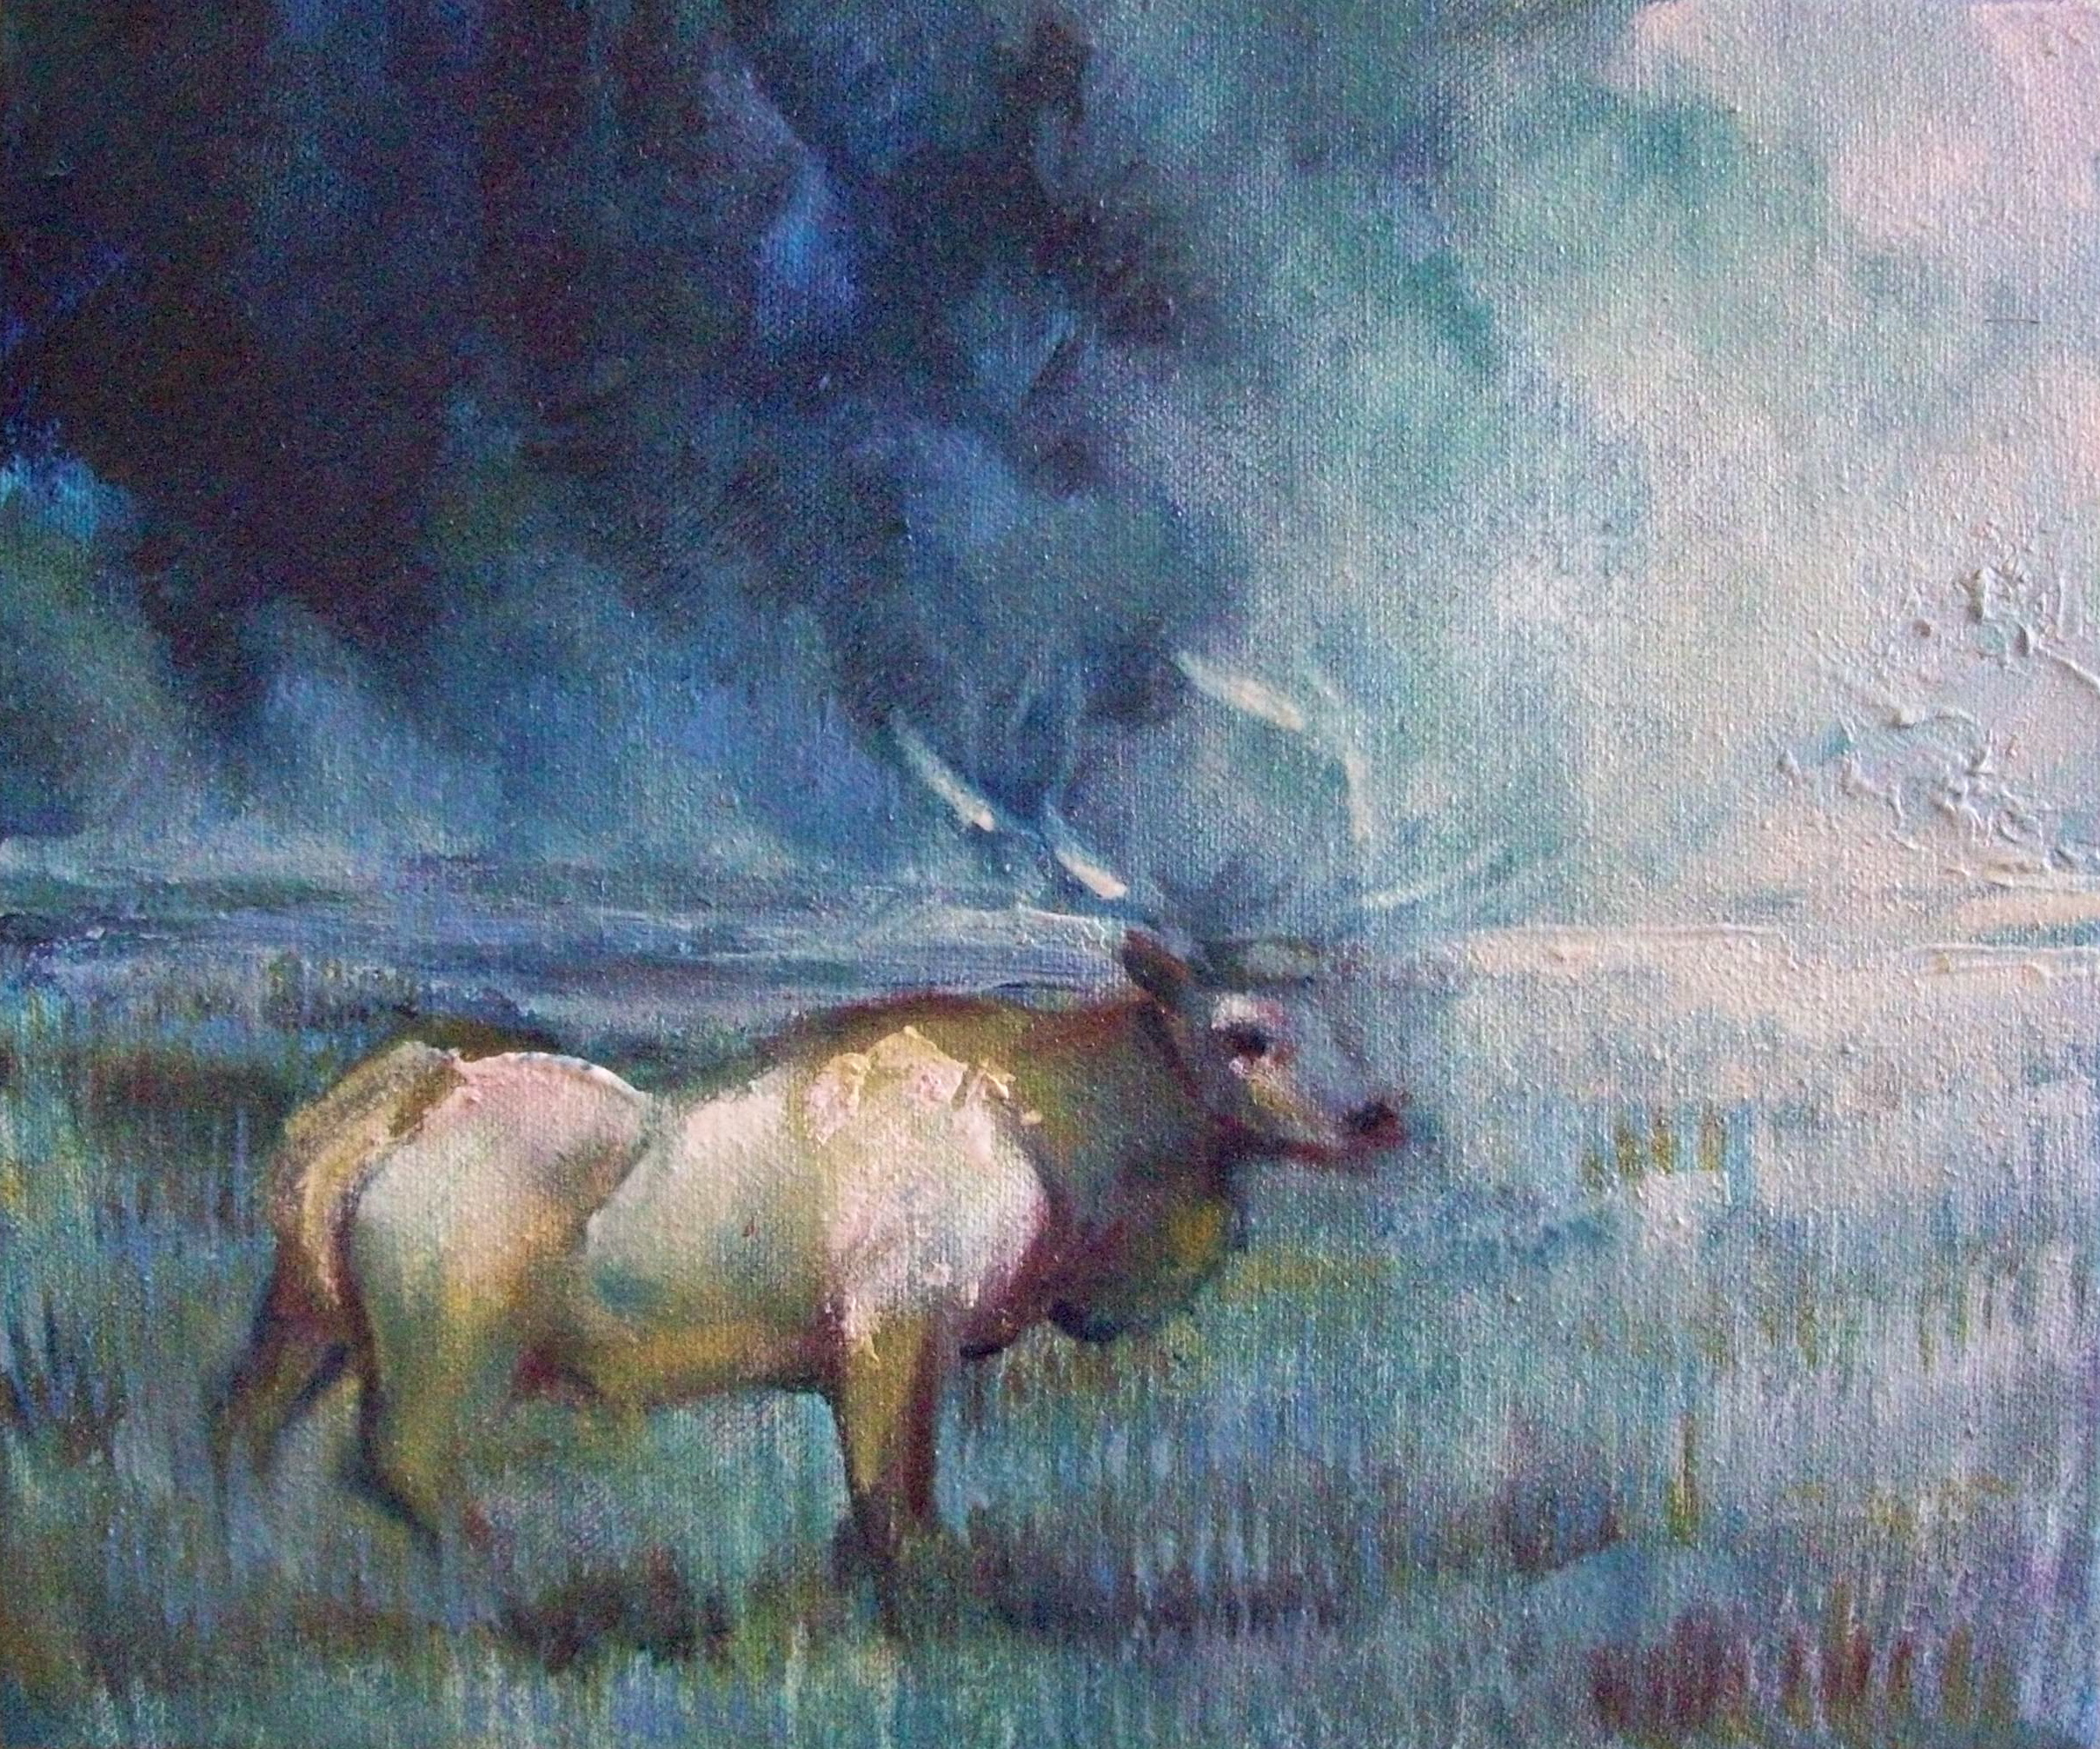 Twilight Stag (Greetings Cards)